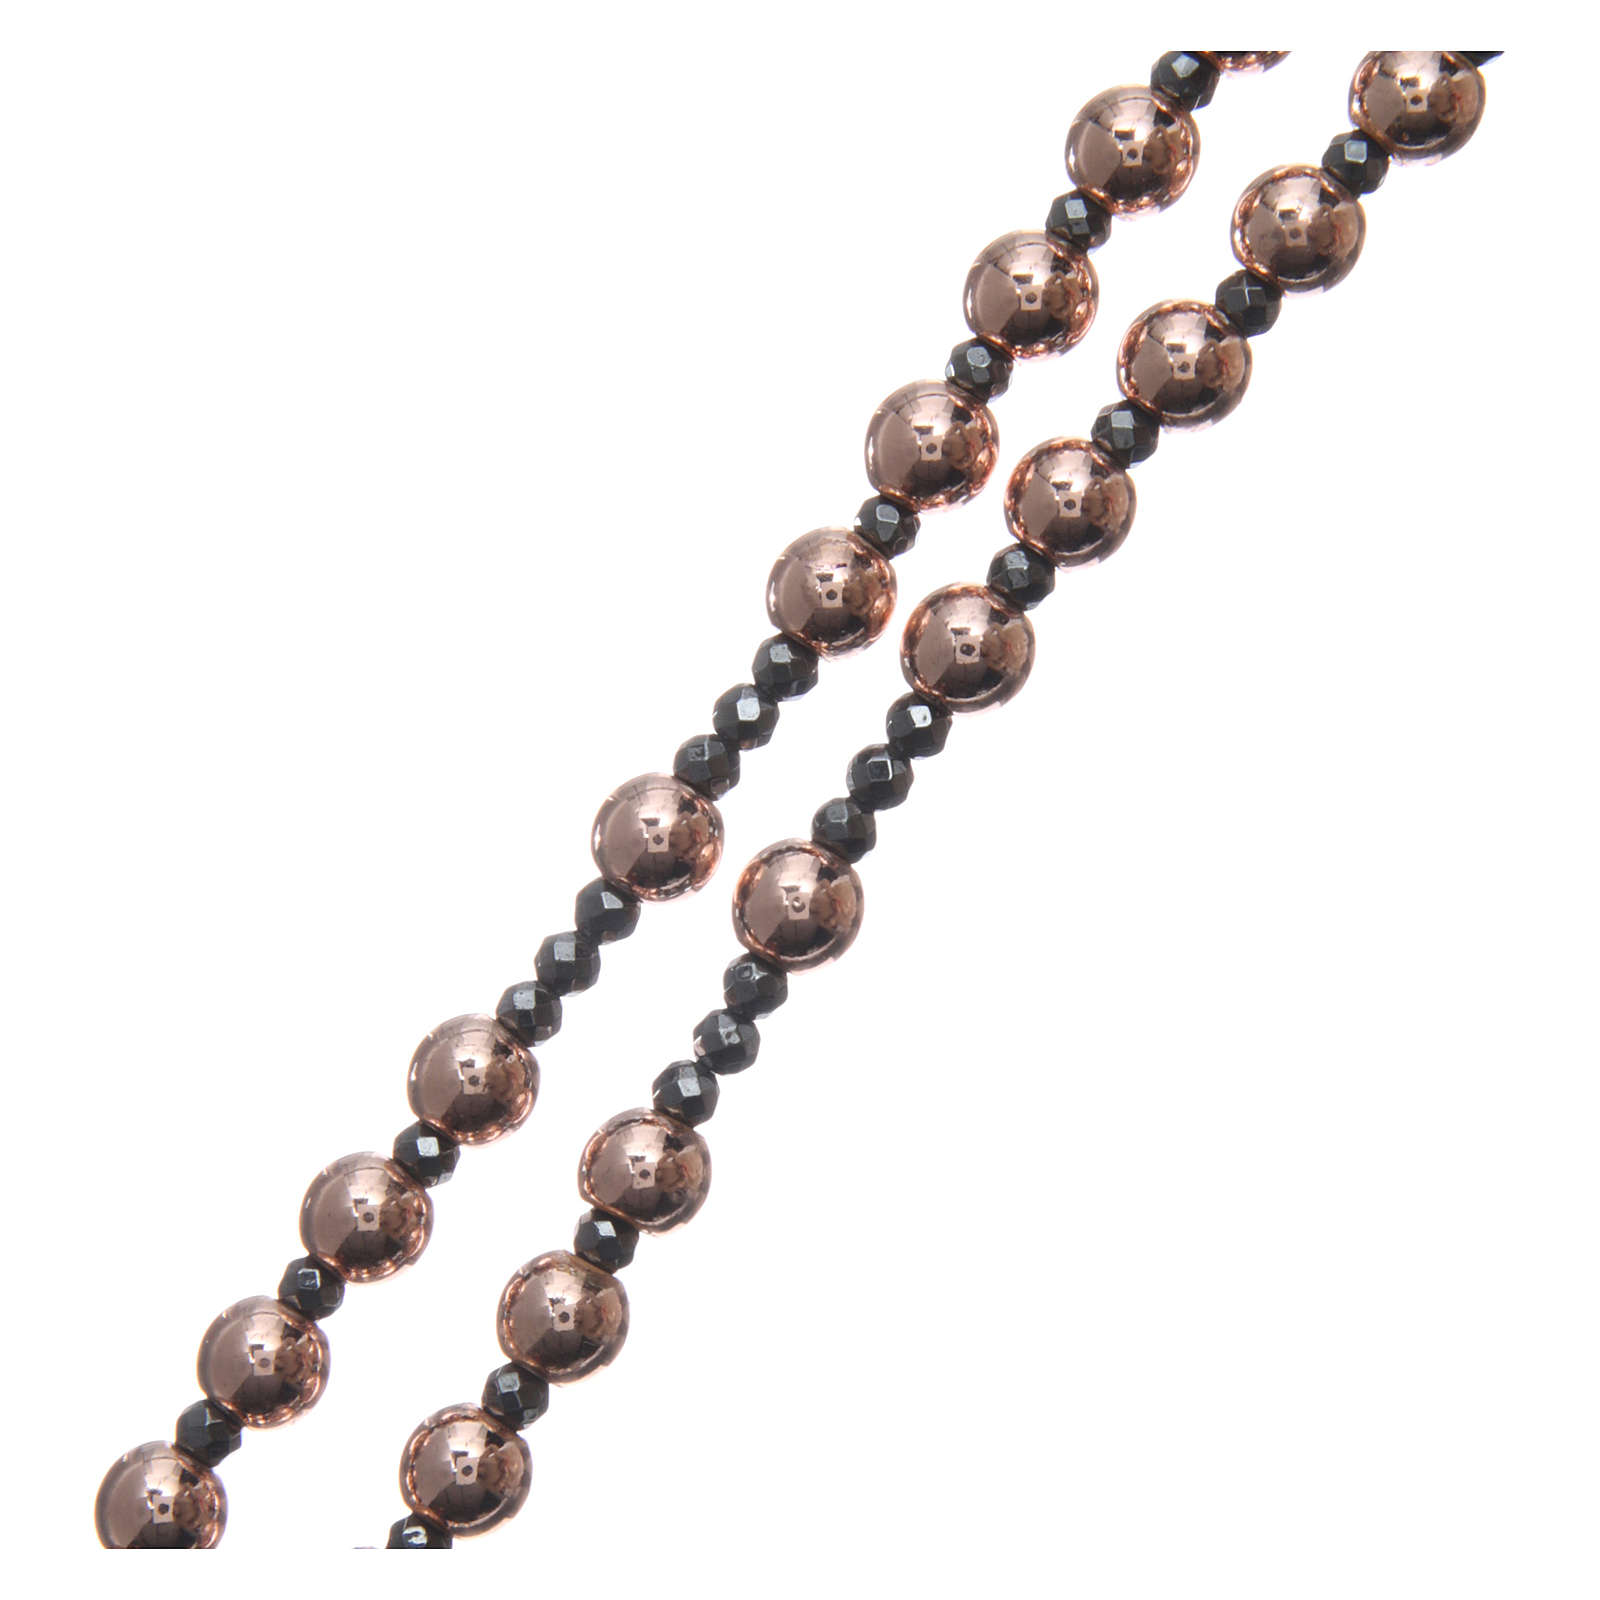 Rosary in 925 sterling silver with smooth pearl beads rosè 6 mm and 3 mm multifaceted beads 4